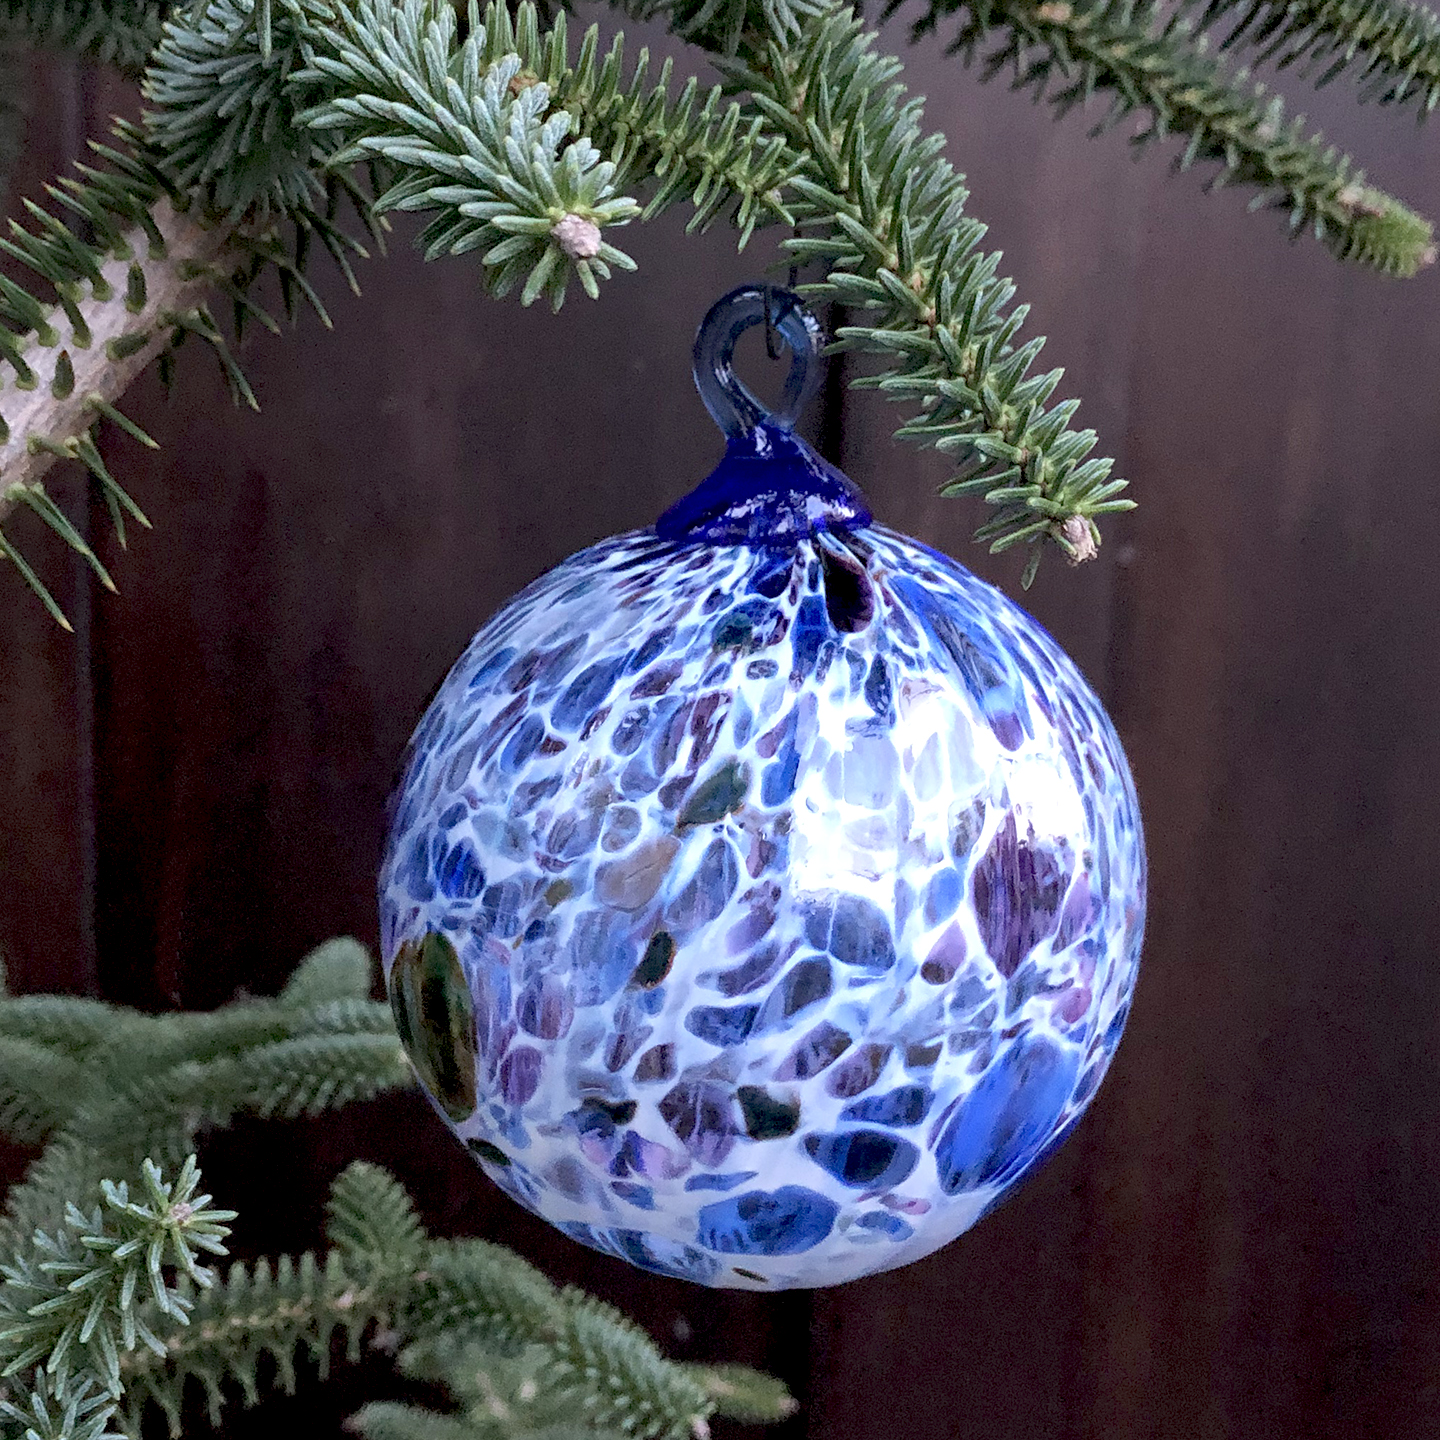 - We only made 200 to mark the 2018 Holiday season.Hand blown fine art glass hanging ornament. Designed and made in Seattle by artist Dehanna Jones.Approximately 4